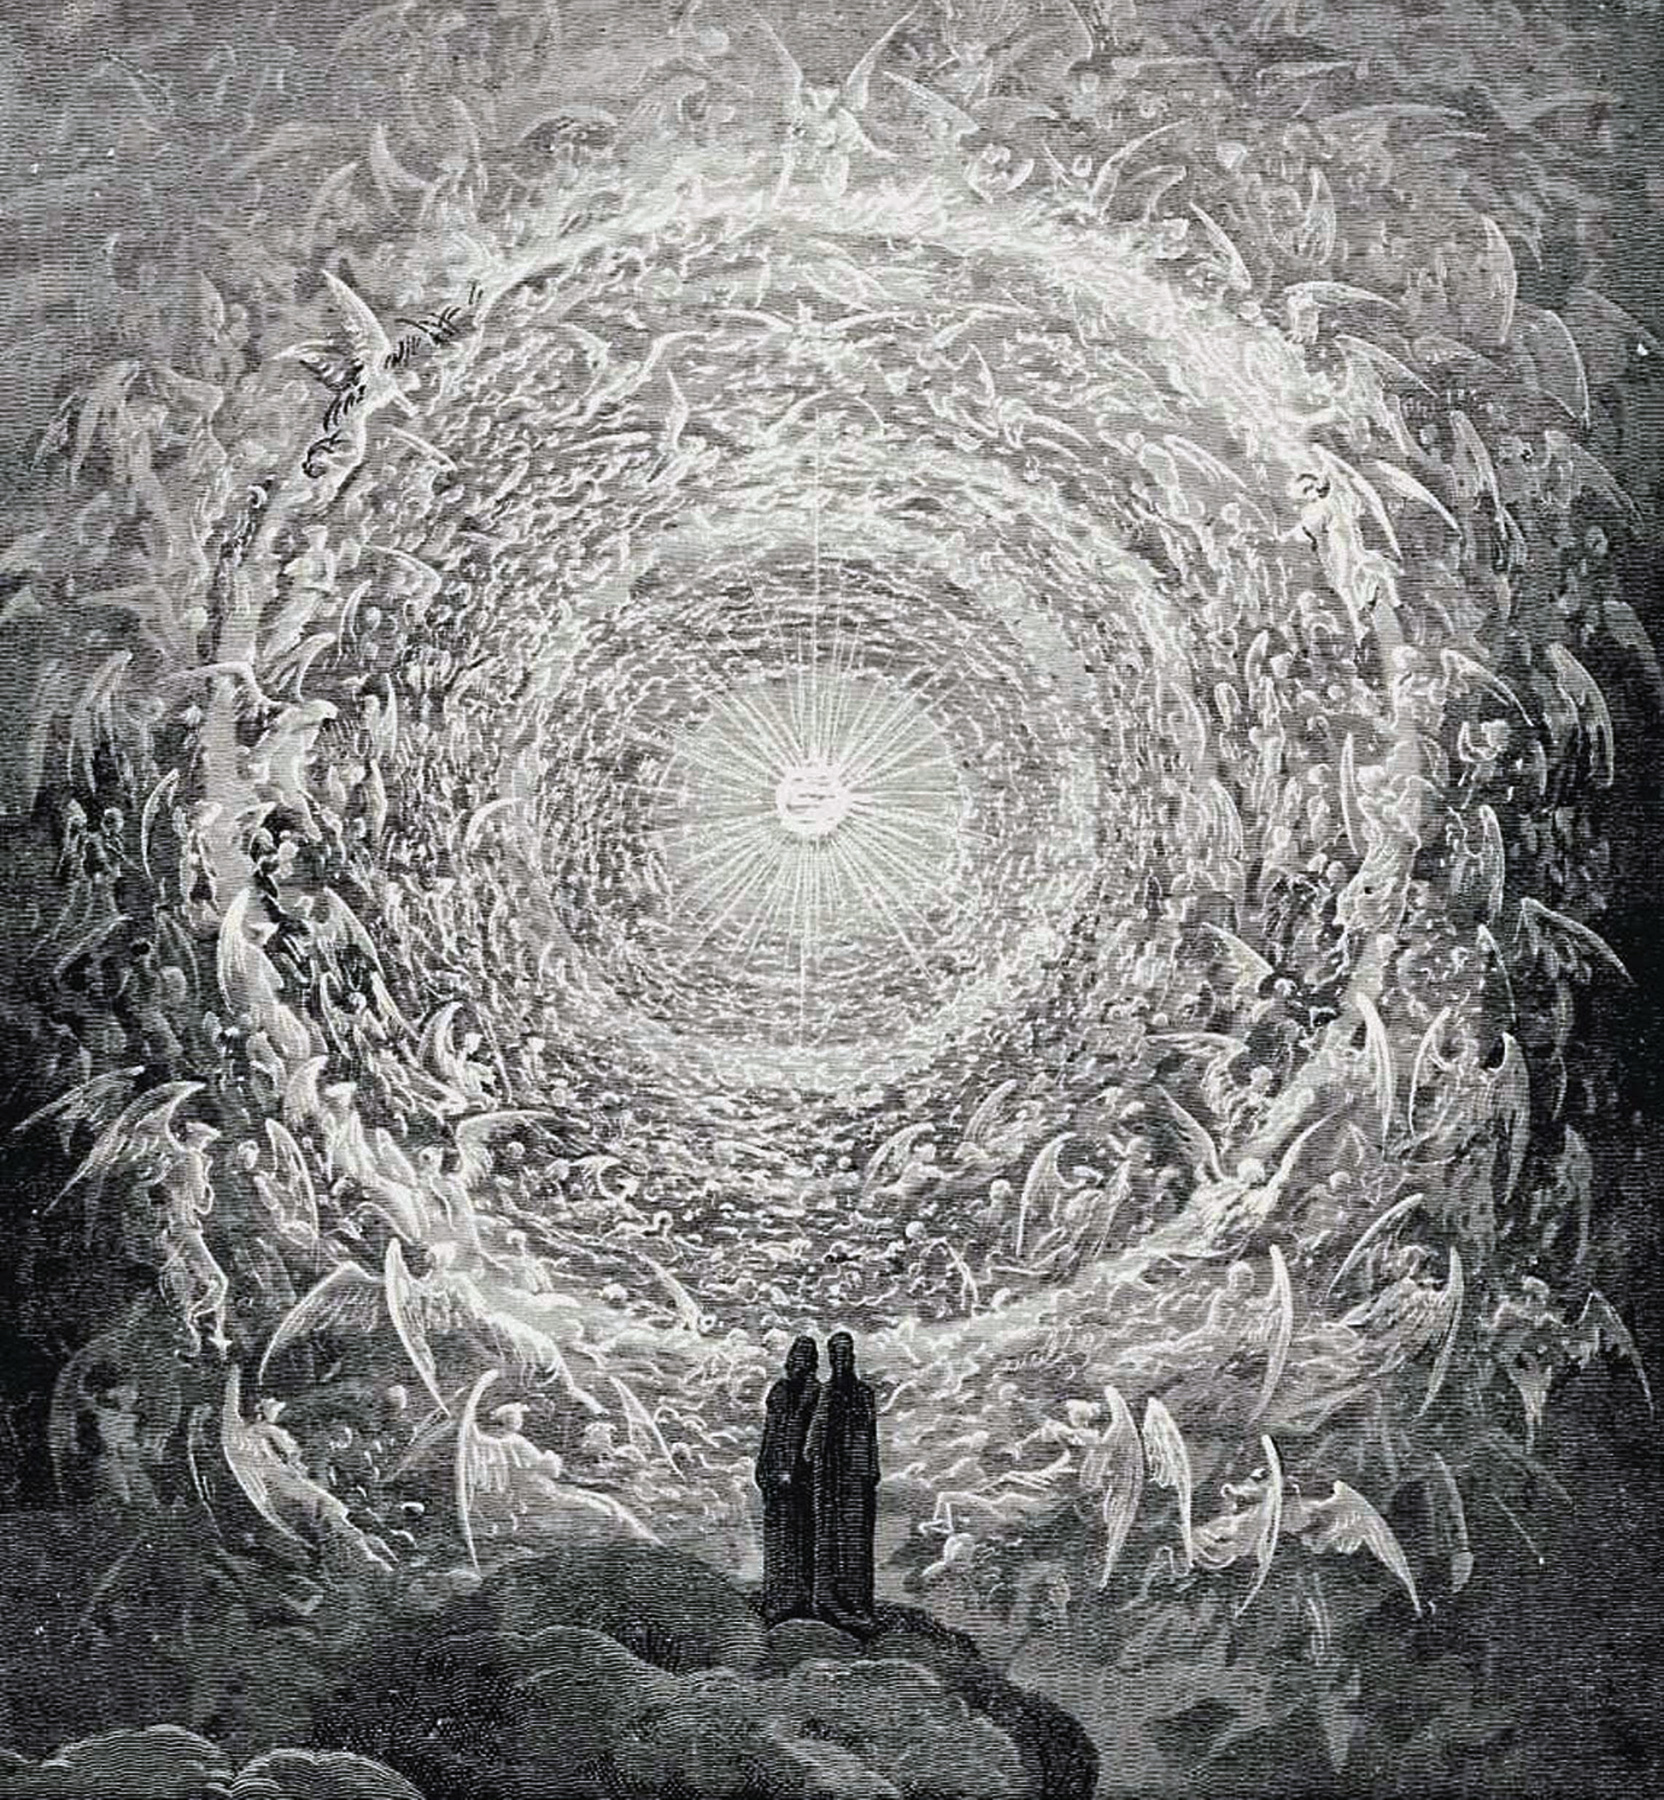 gustave-dore-paradiso-canto-34-1868-trivium-art-history